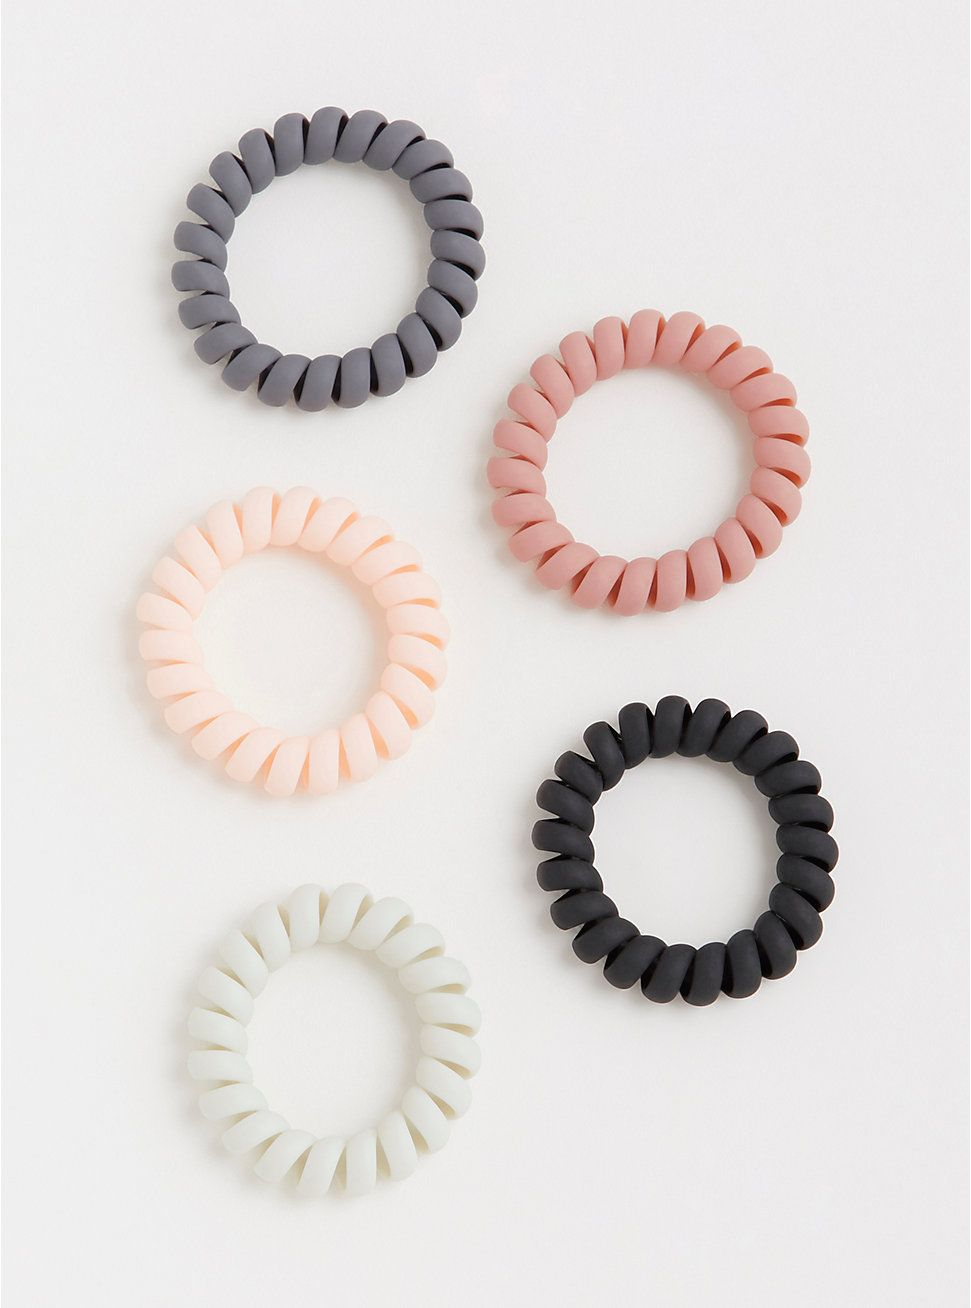 Plus Size Matte Coil Hair Tie Pack - Pack of 5 dba98a093f4